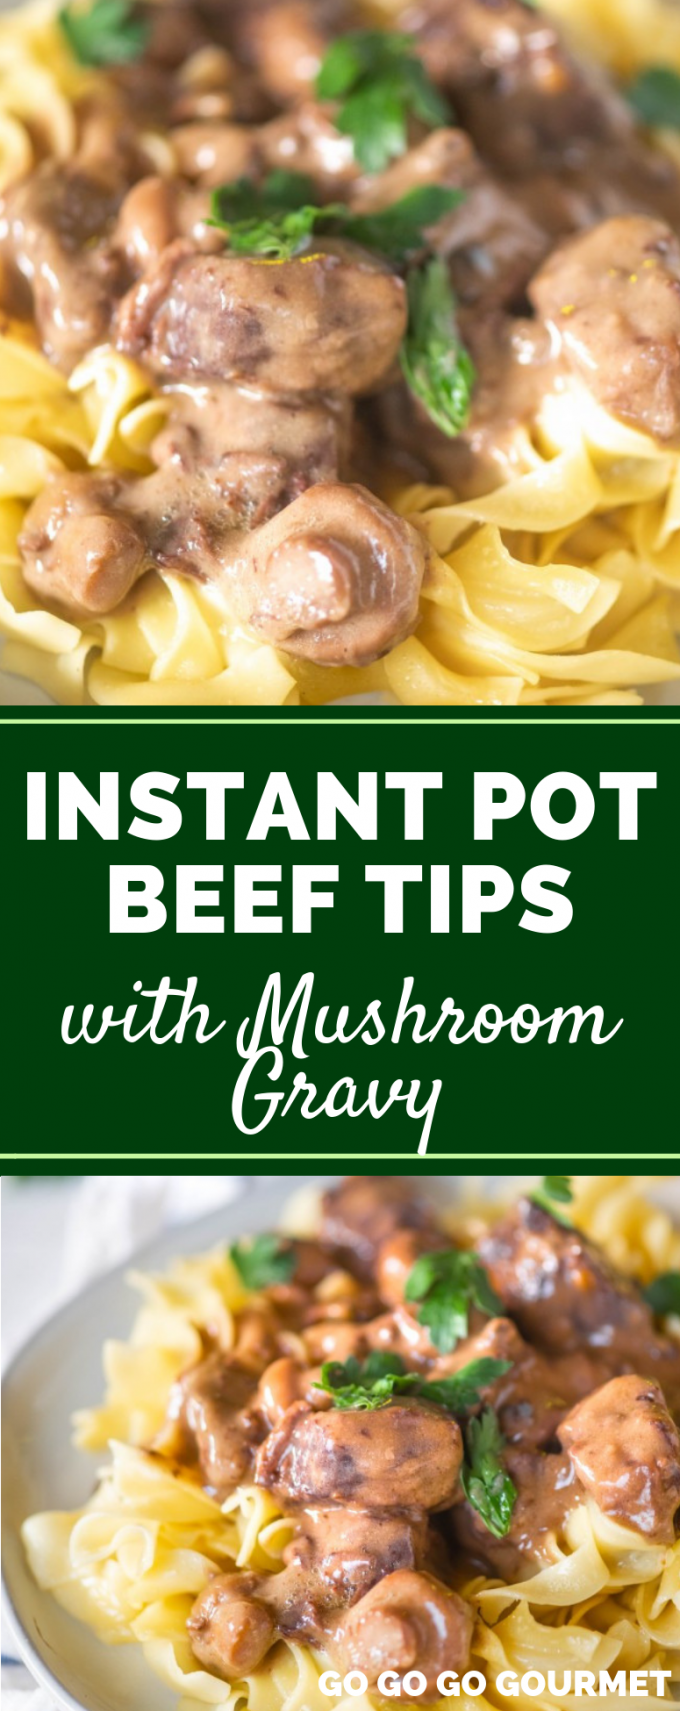 This easy Instant Pot Beef Tips recipe is swimming in delicious mushrooms and gravy! While it's not healthy or Whole 30 compliant, it is a comfort food that the whole family will enjoy! Best served over rice, noodles or mashed potatoes. #gogogogourmet #instantpotbeeftips #easyinstantpotrecipes #comfortfoodrecipes #beefandrice